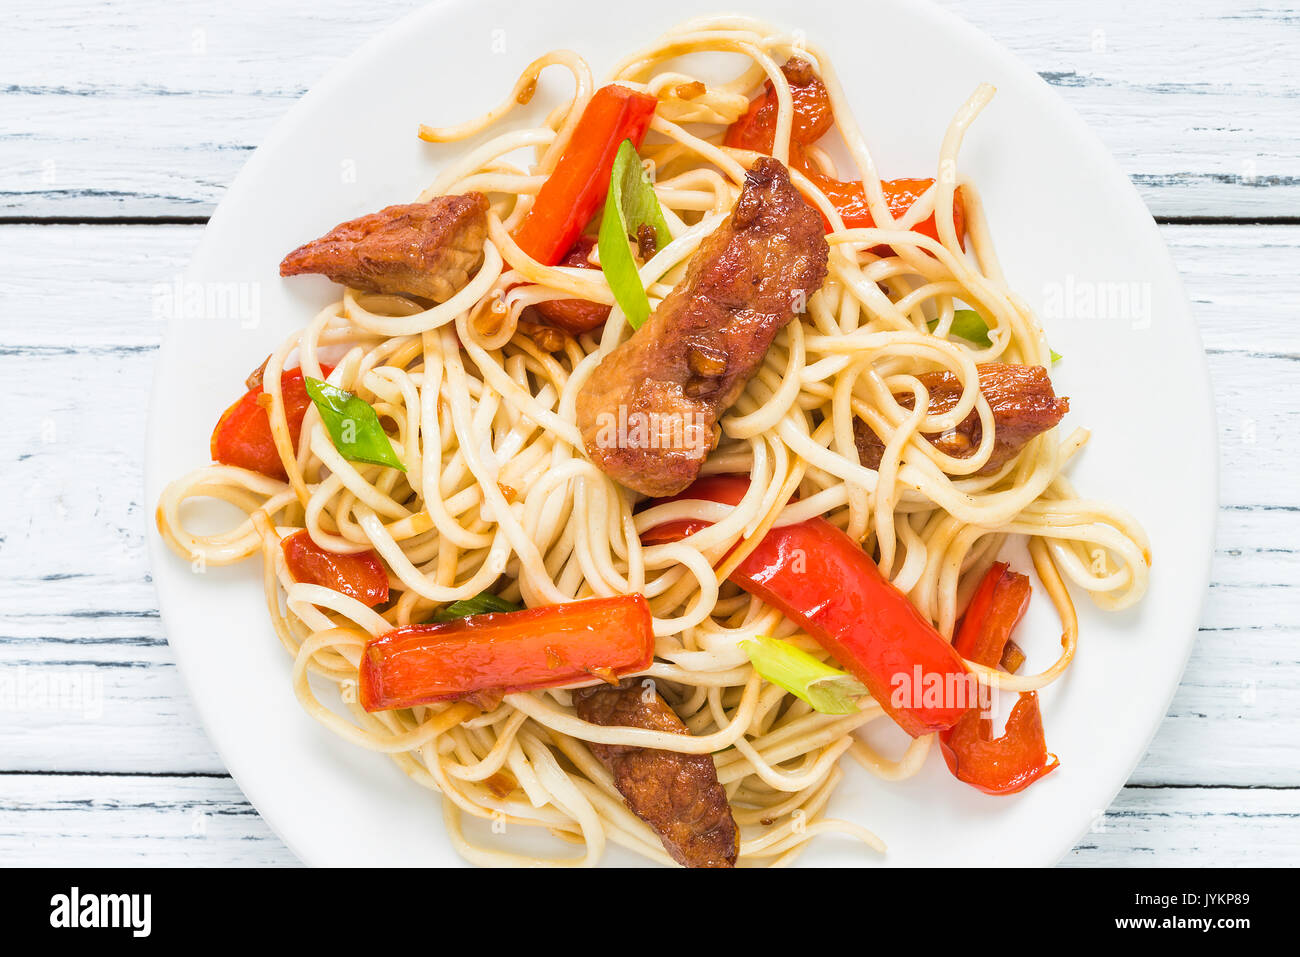 Szechuan stir fried spicy pork with red pepper and green